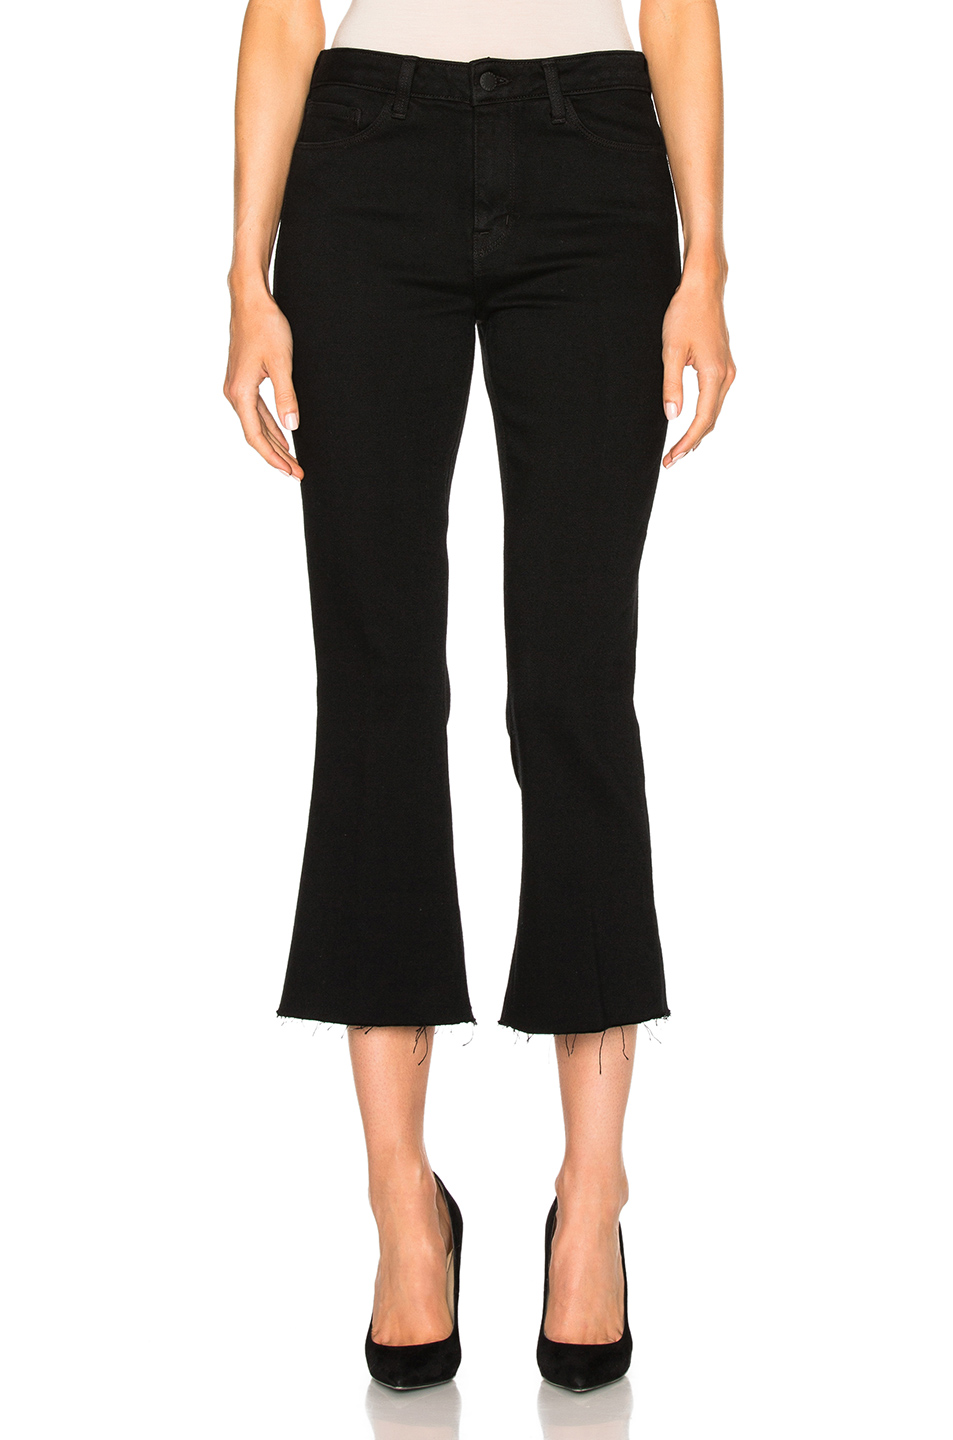 L'AGENCE Sophia High Rise Cropped Flare in Black